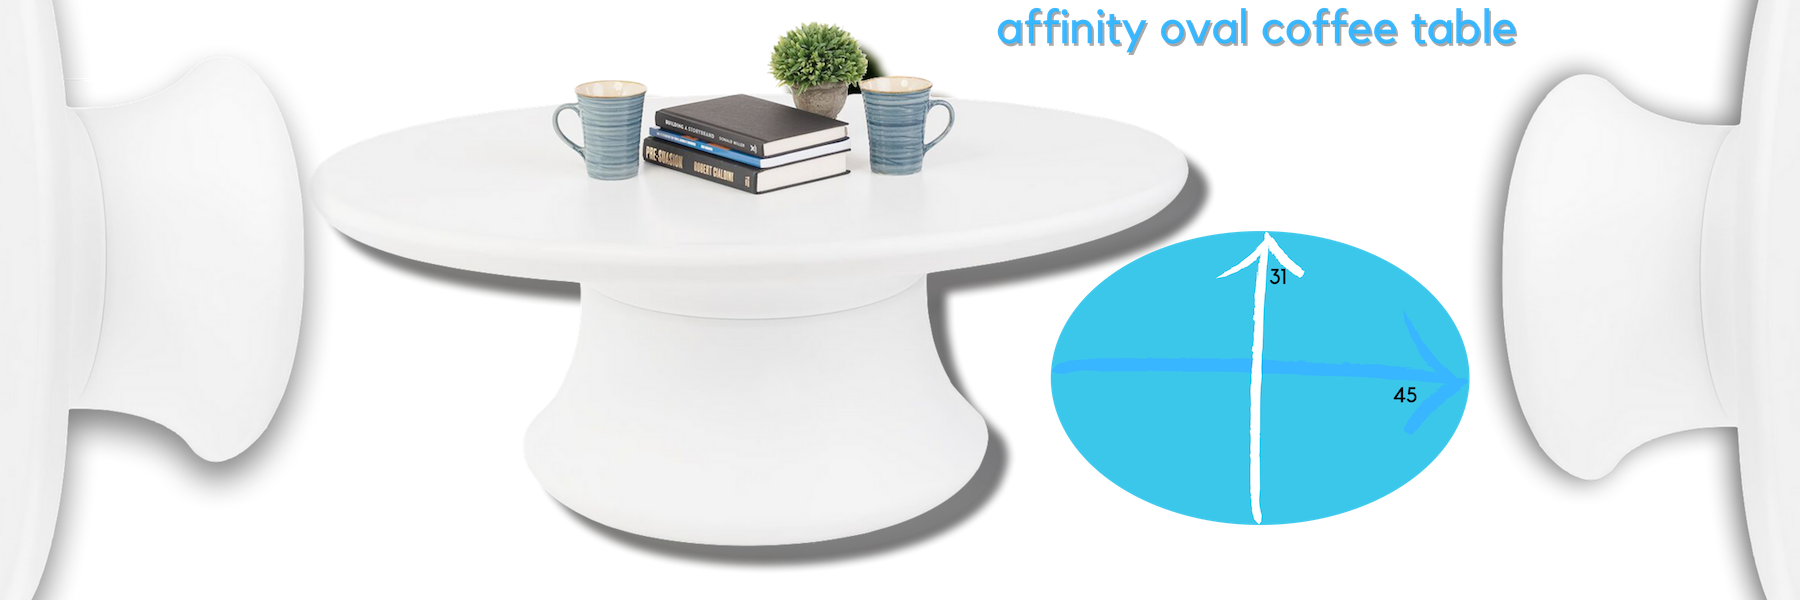 Ledge Lounger Affinity Coffee Table